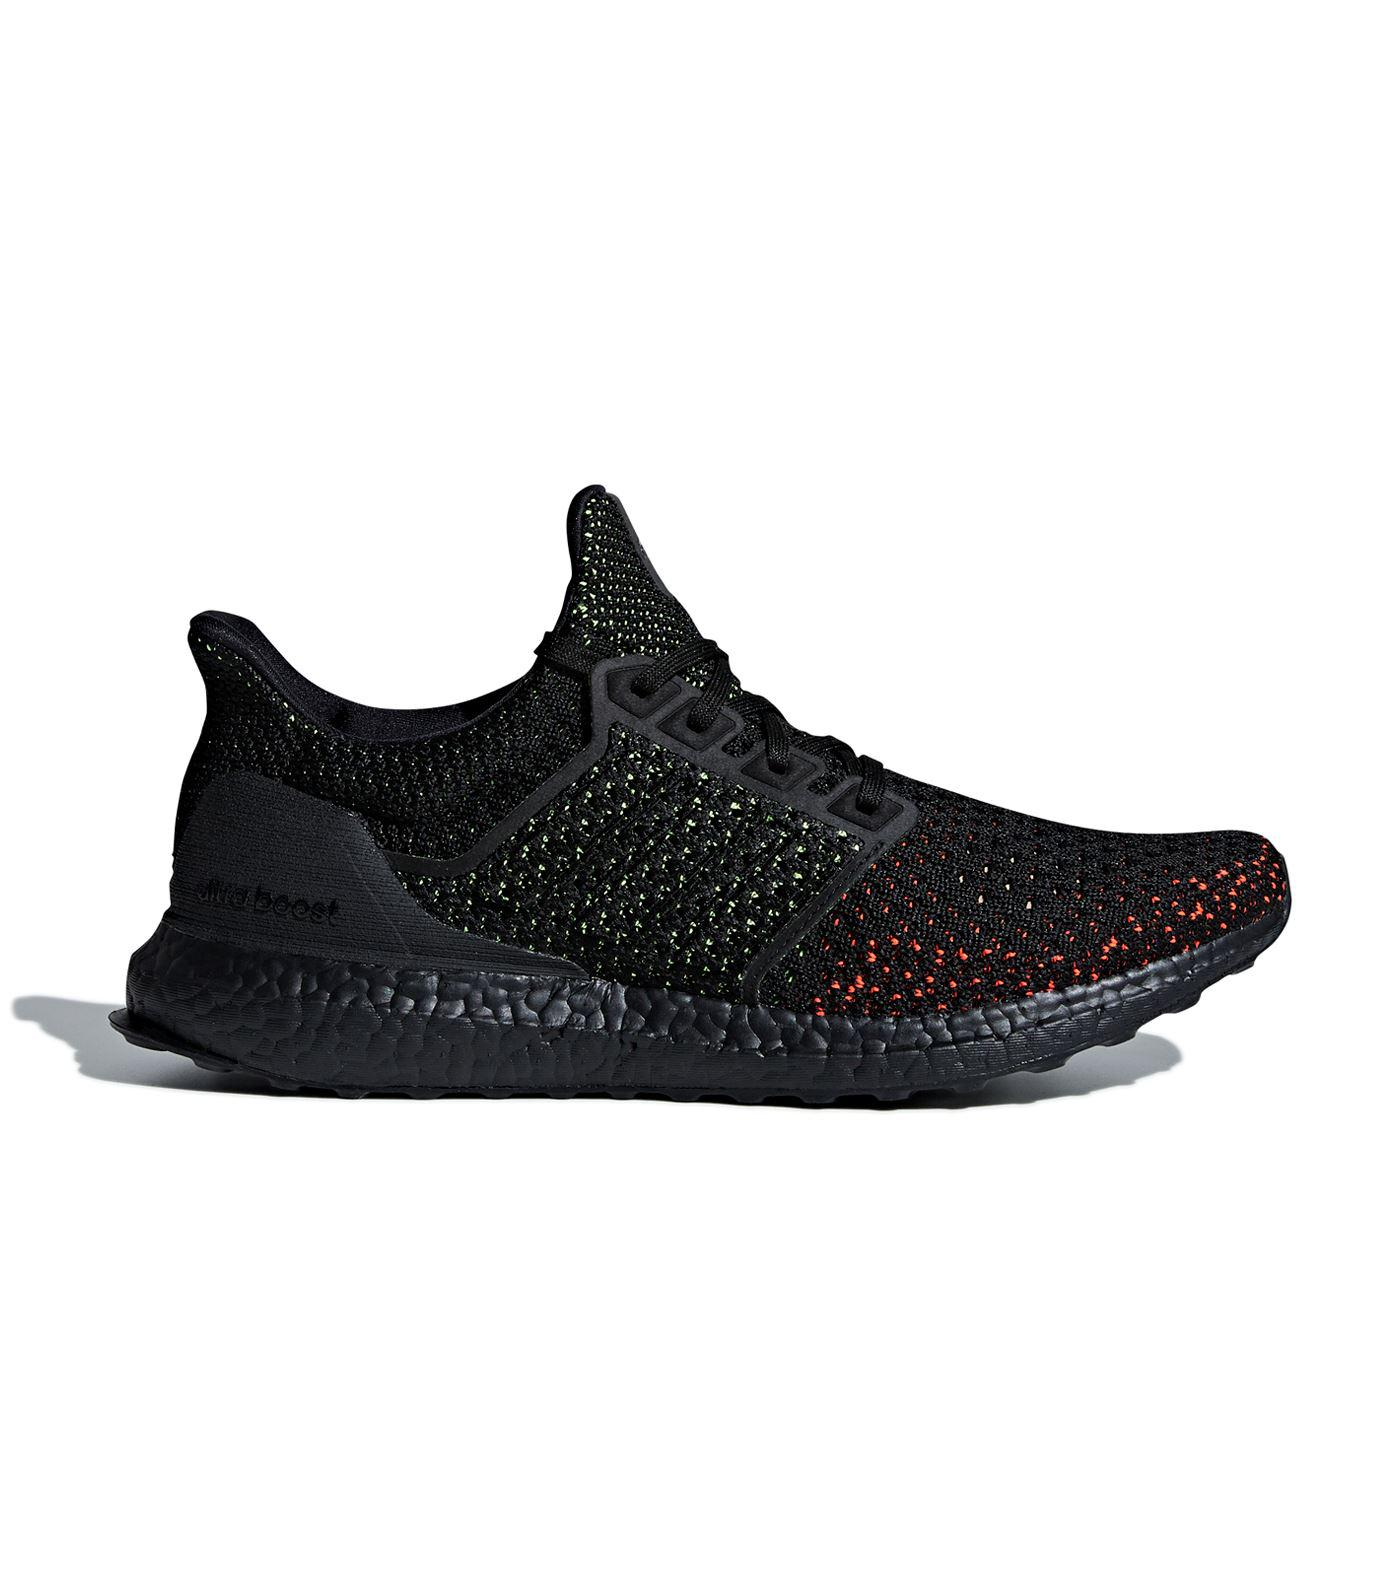 f2c36276e731c adidas Ultraboost X Clima Trainers in Black for Men - Lyst